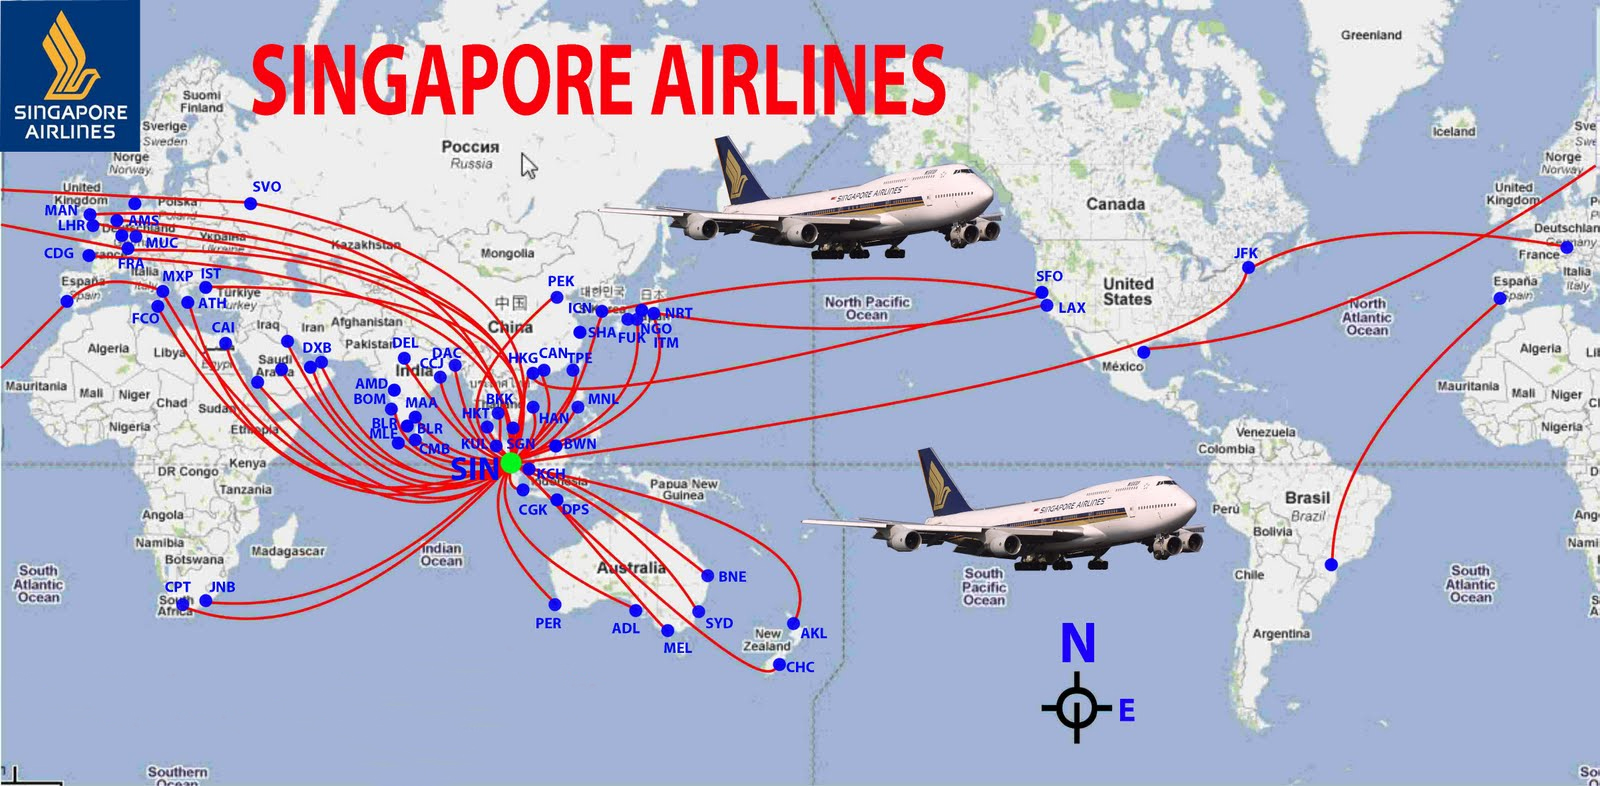 Singapore-Airlines-Route-Map.jpg